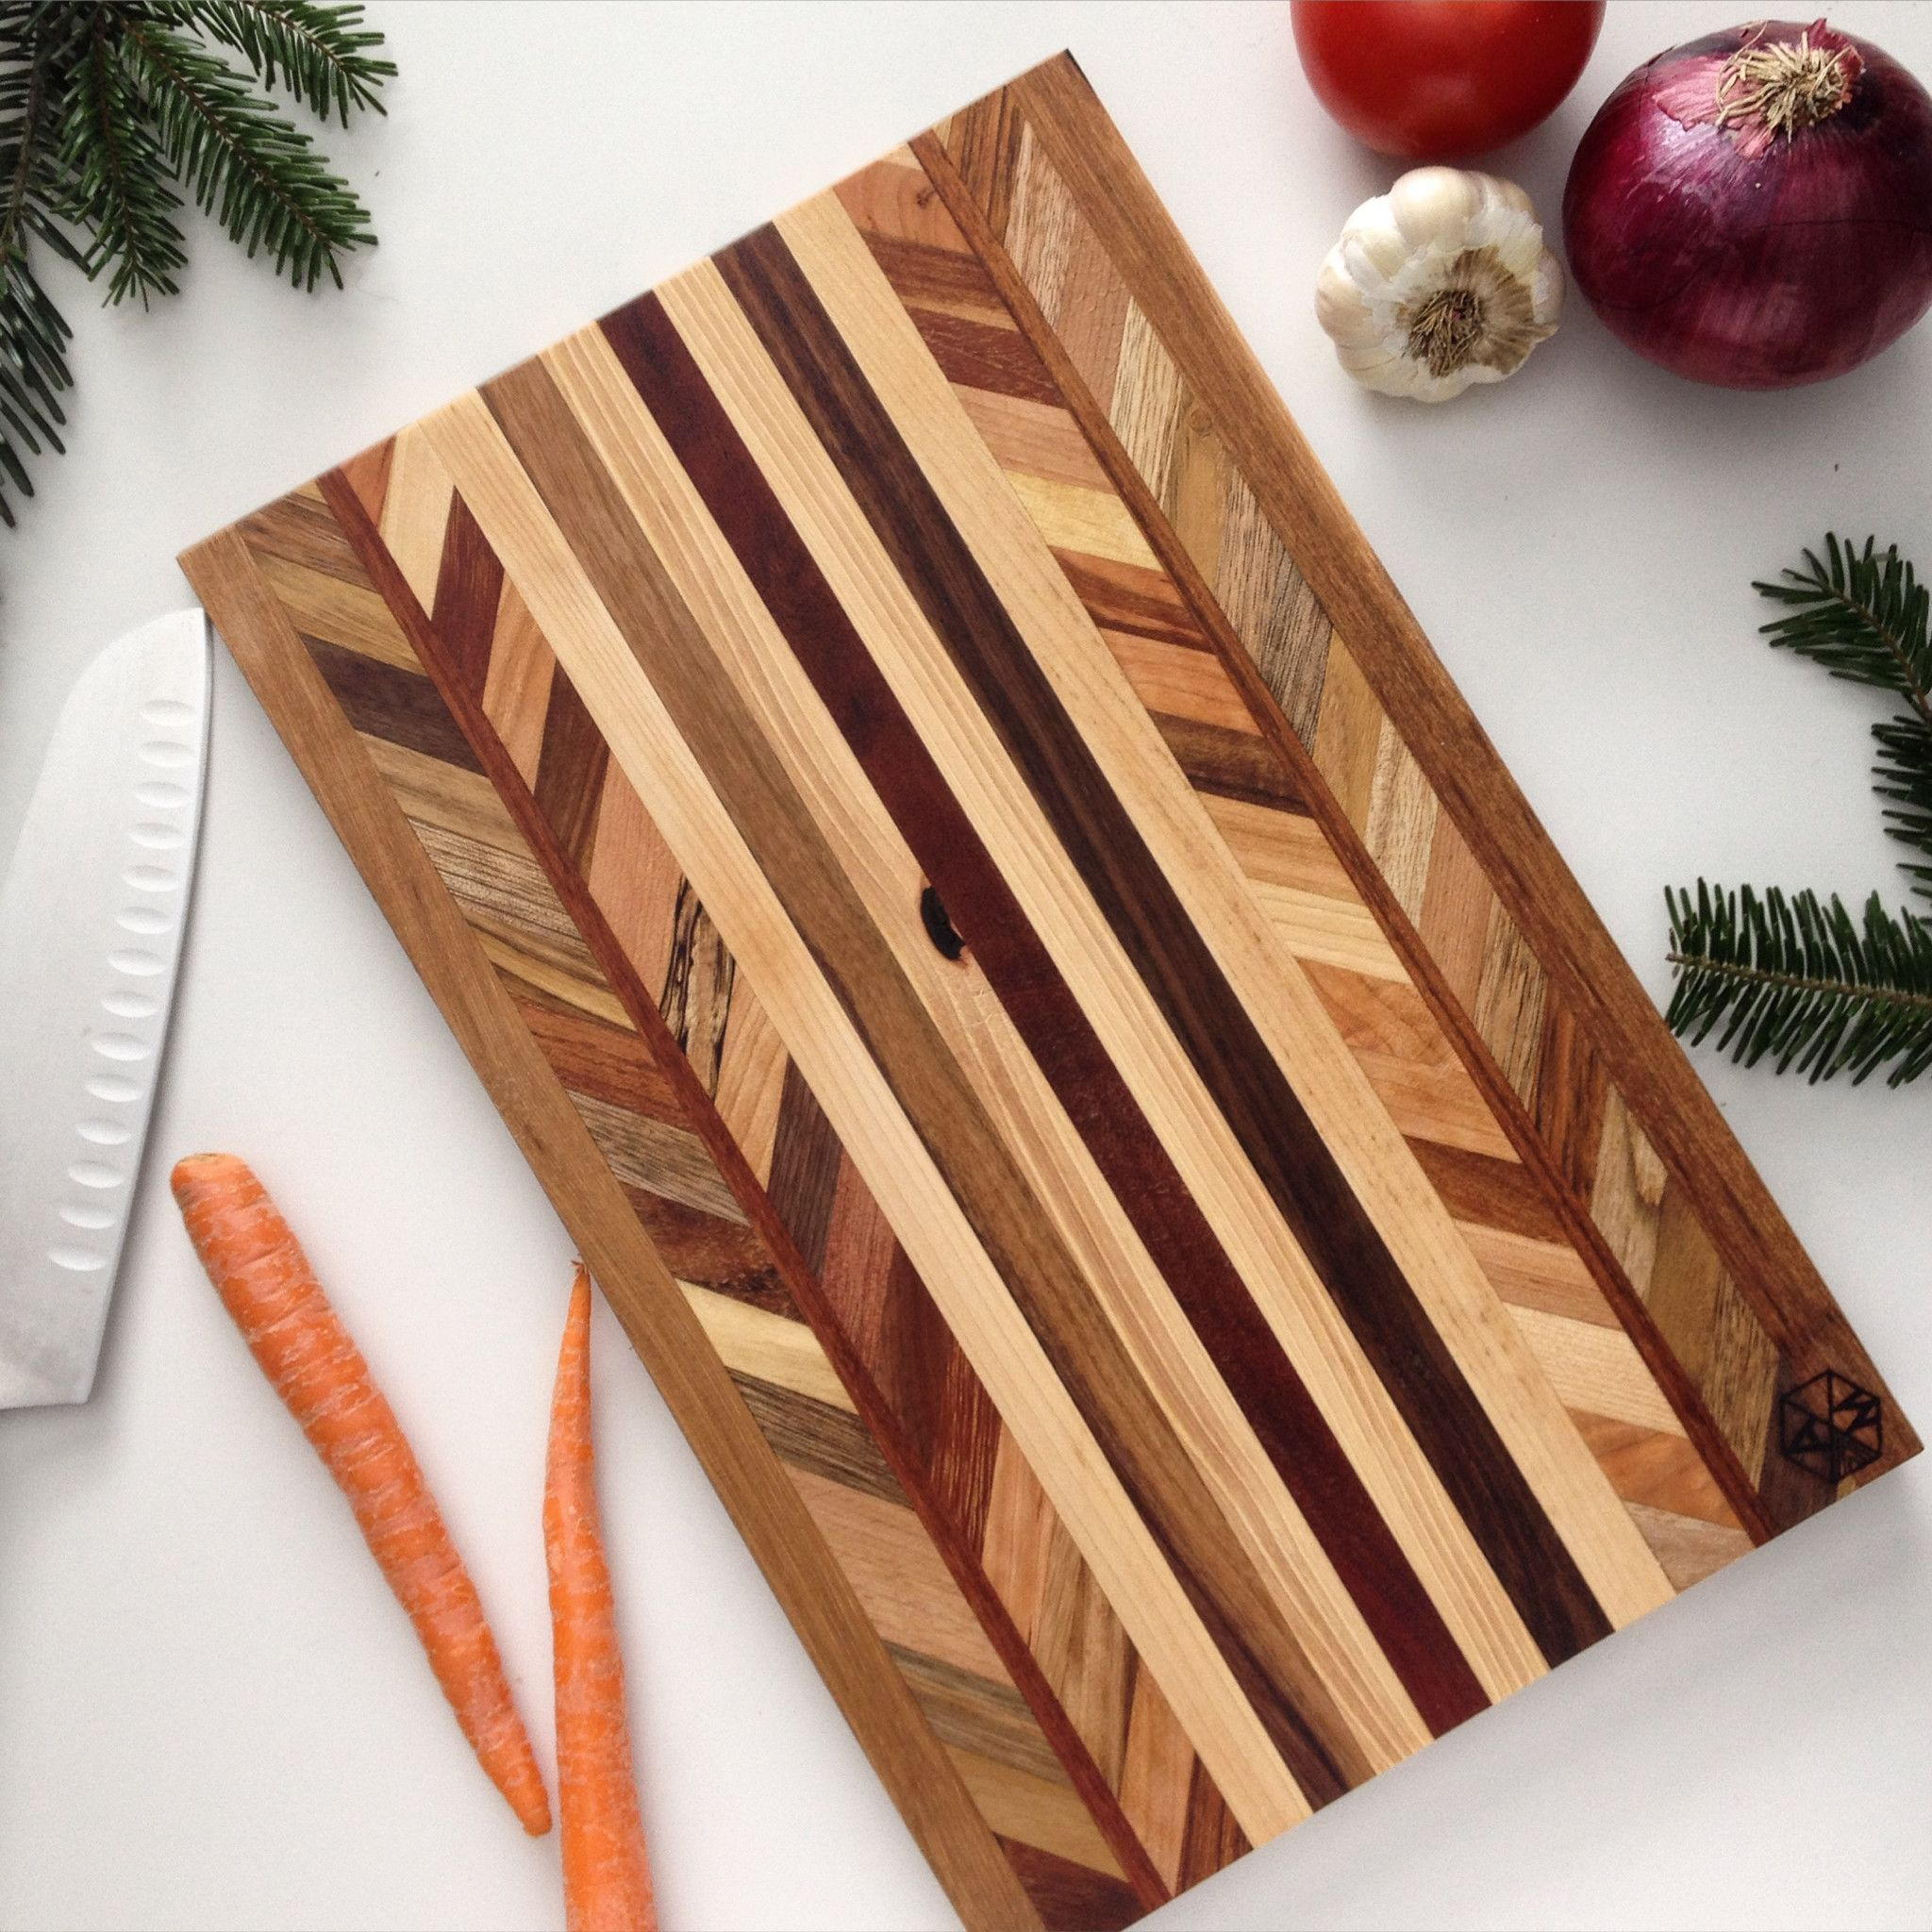 chevron reclaimed wood cutting board the best cutting board ever created perhaps projects. Black Bedroom Furniture Sets. Home Design Ideas